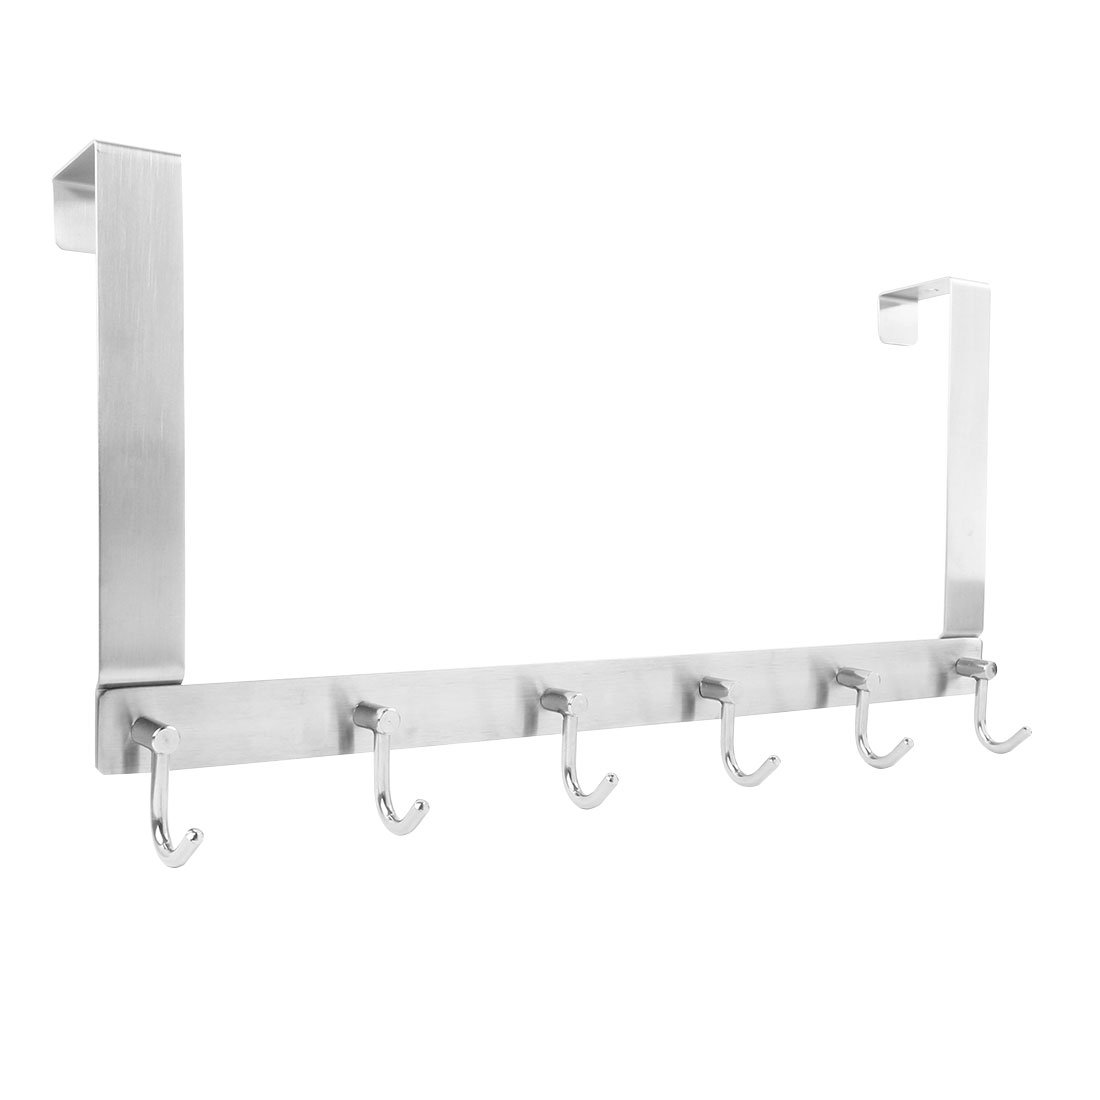 uxcell 304 Stainless Steel J Shaped Over The Door Hook Organizer Rack Hanging Coats Hats 6 Hooks